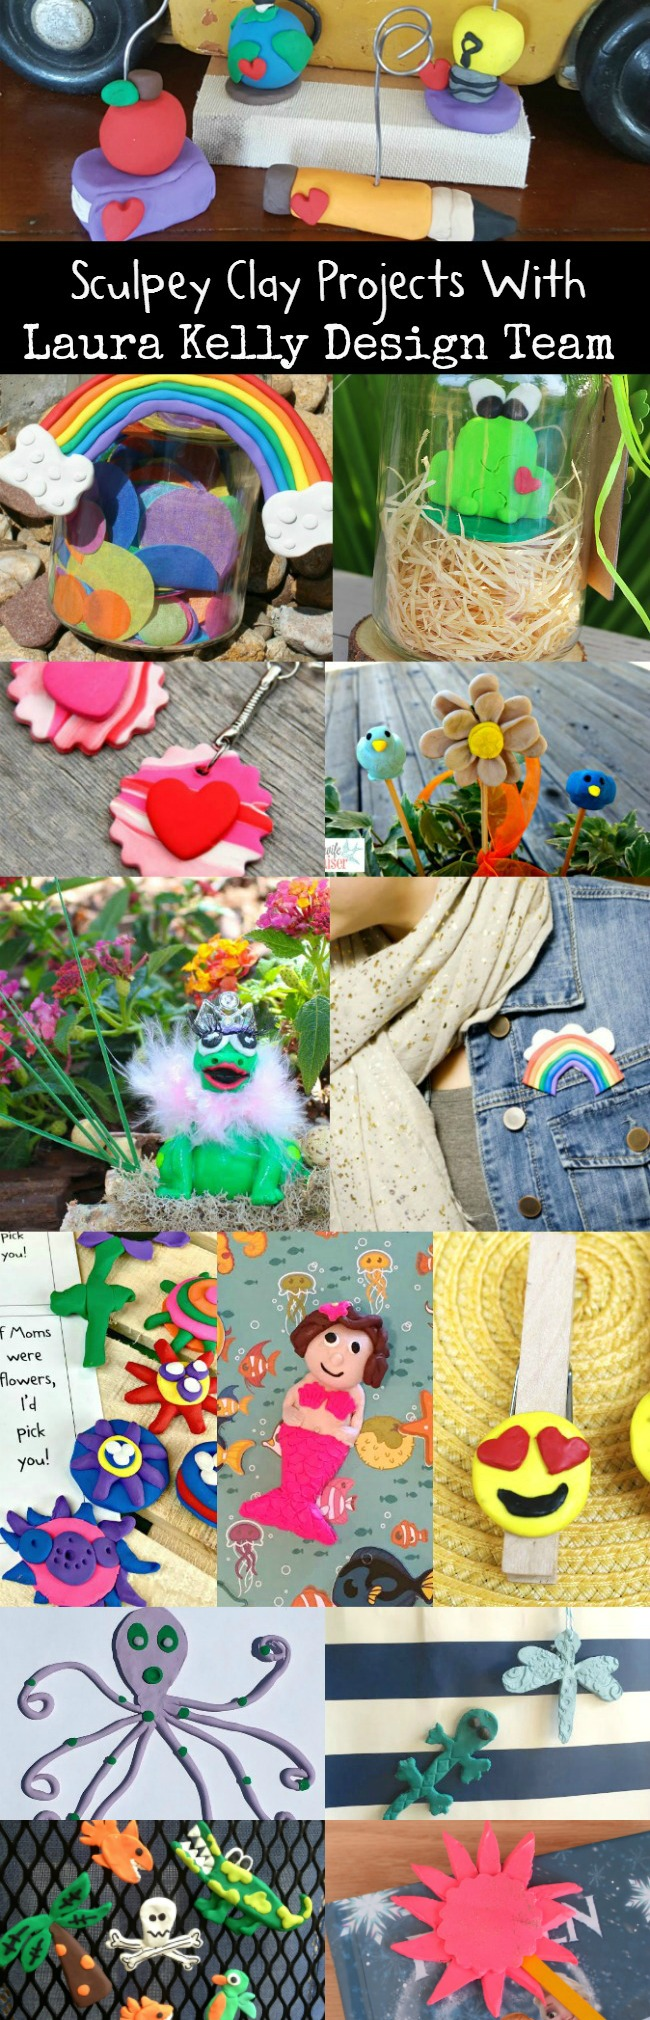 Sculpey Clay Projects | A collection of DIY clay projects